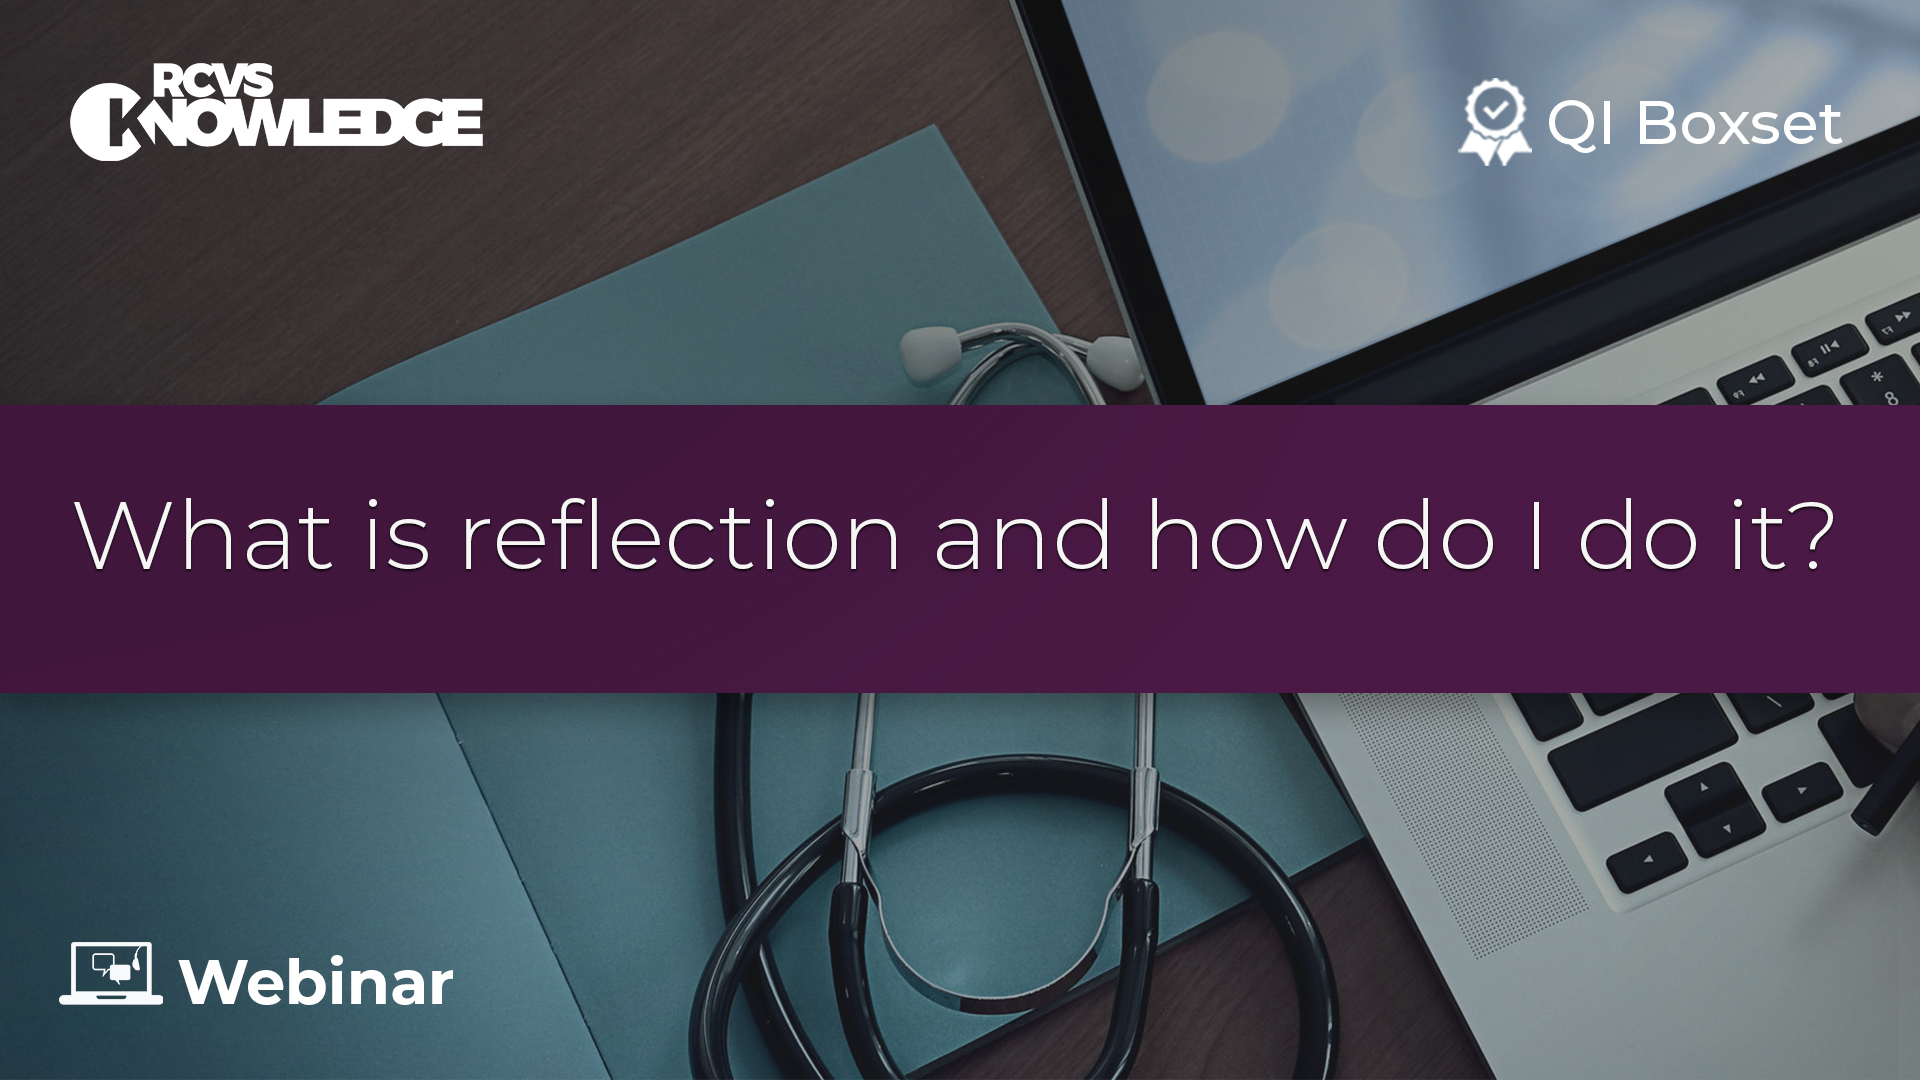 What is reflection and how do I do it?